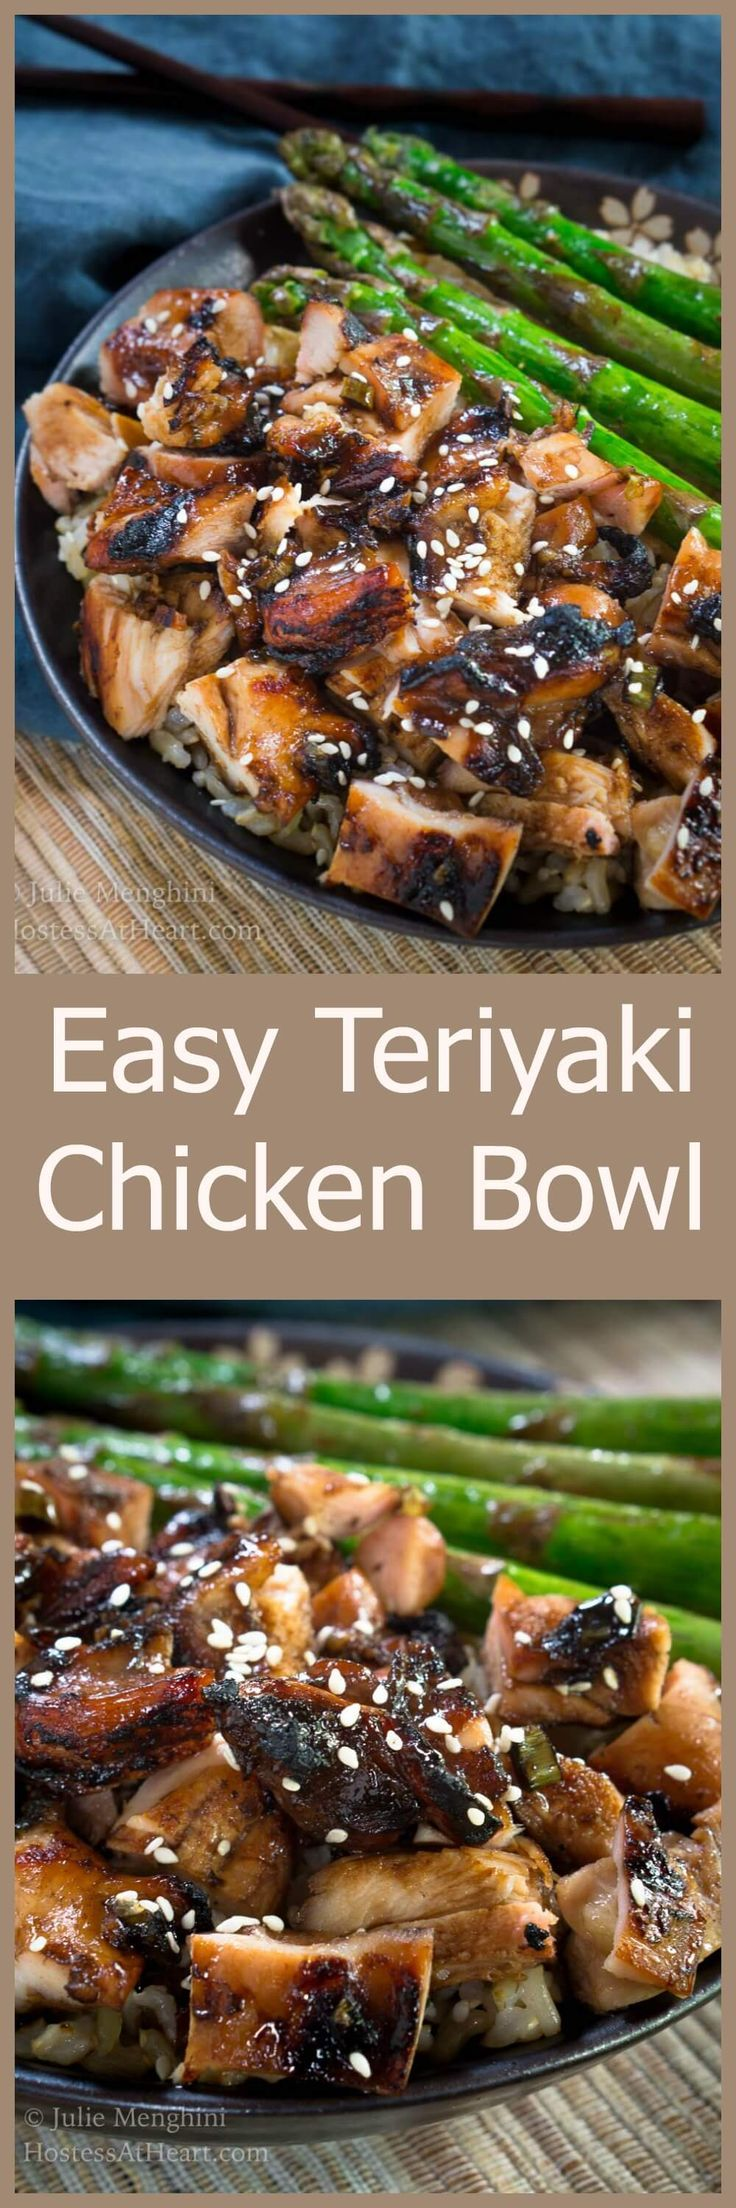 Easy Teriyaki Chicken Bowl Recipe is a rich slightly sweet savory dish that tastes better than takeout. HostessAtHeart.com via @HostessAtHeart